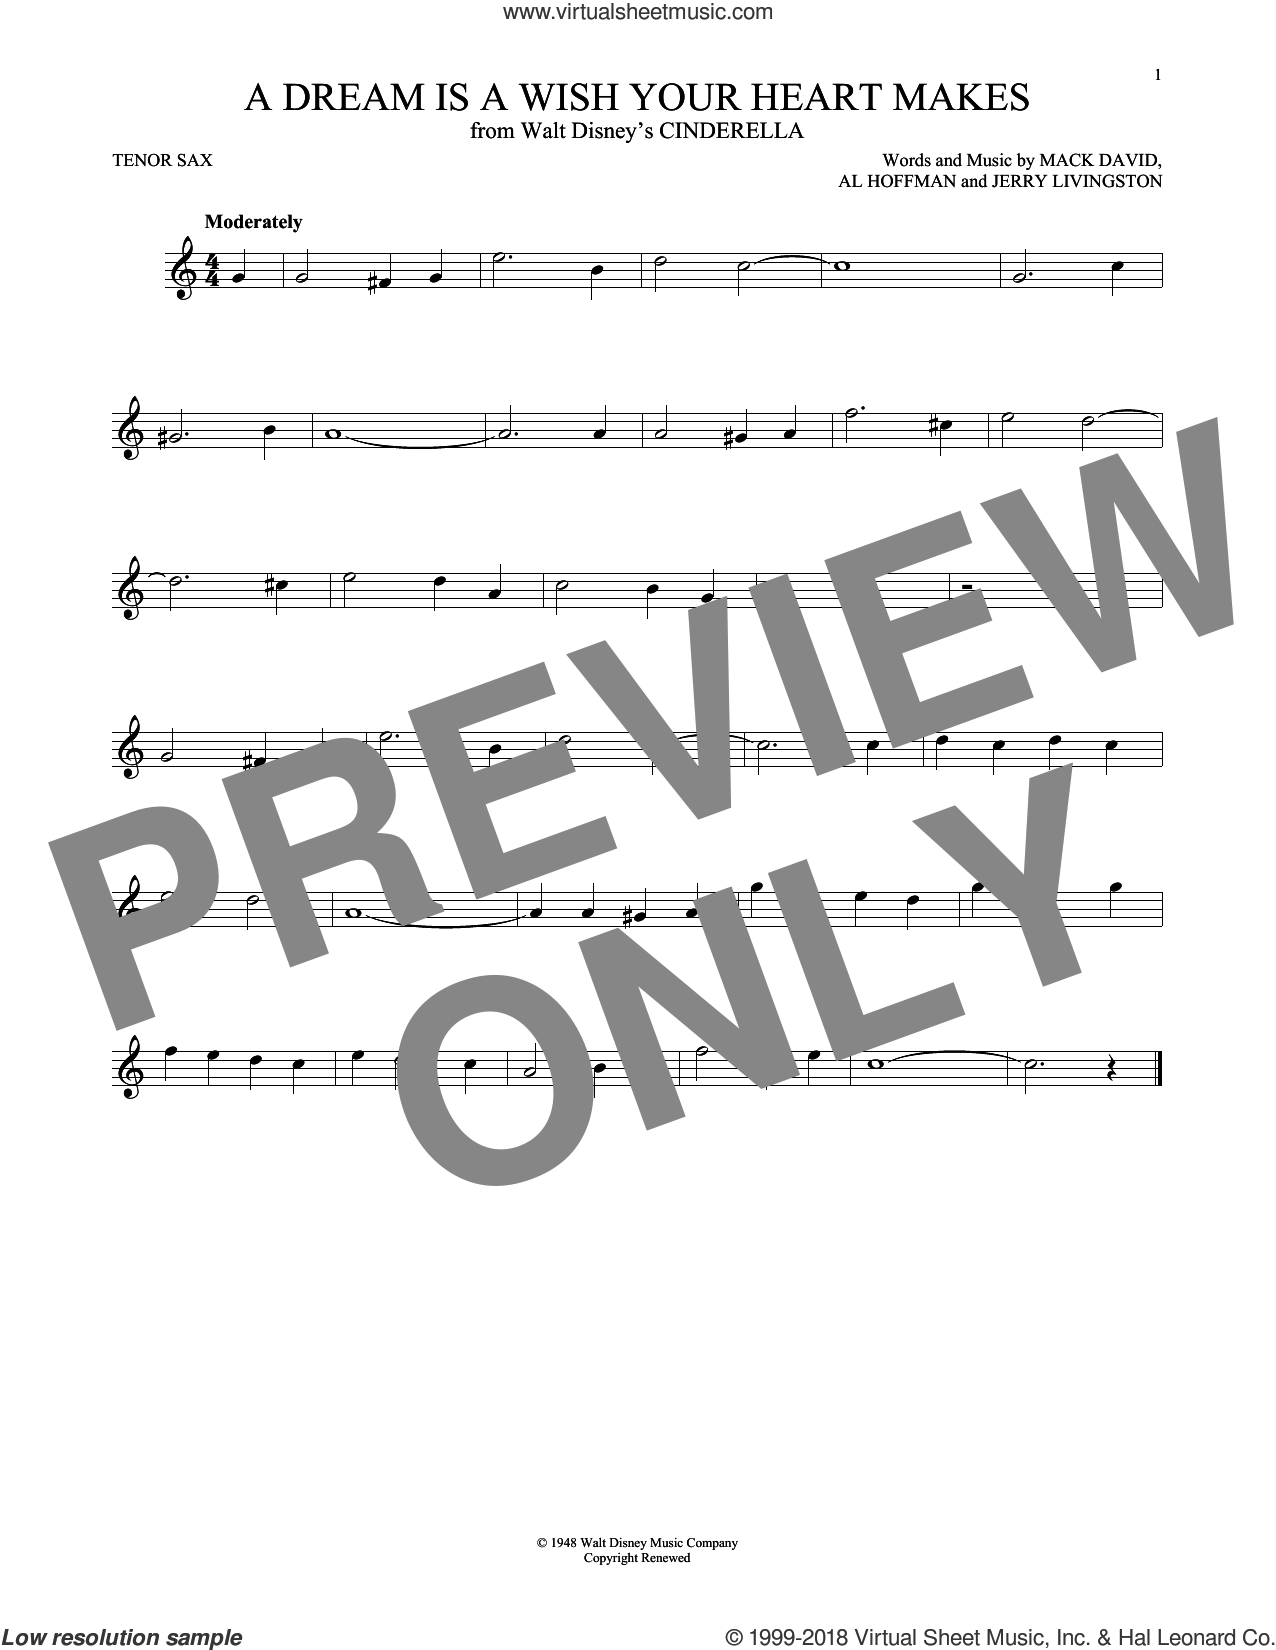 A Dream Is A Wish Your Heart Makes sheet music for tenor saxophone solo by Al Hoffman, Linda Ronstadt, Jerry Livingston, Mack David and Mack David, Al Hoffman and Jerry Livingston, intermediate skill level